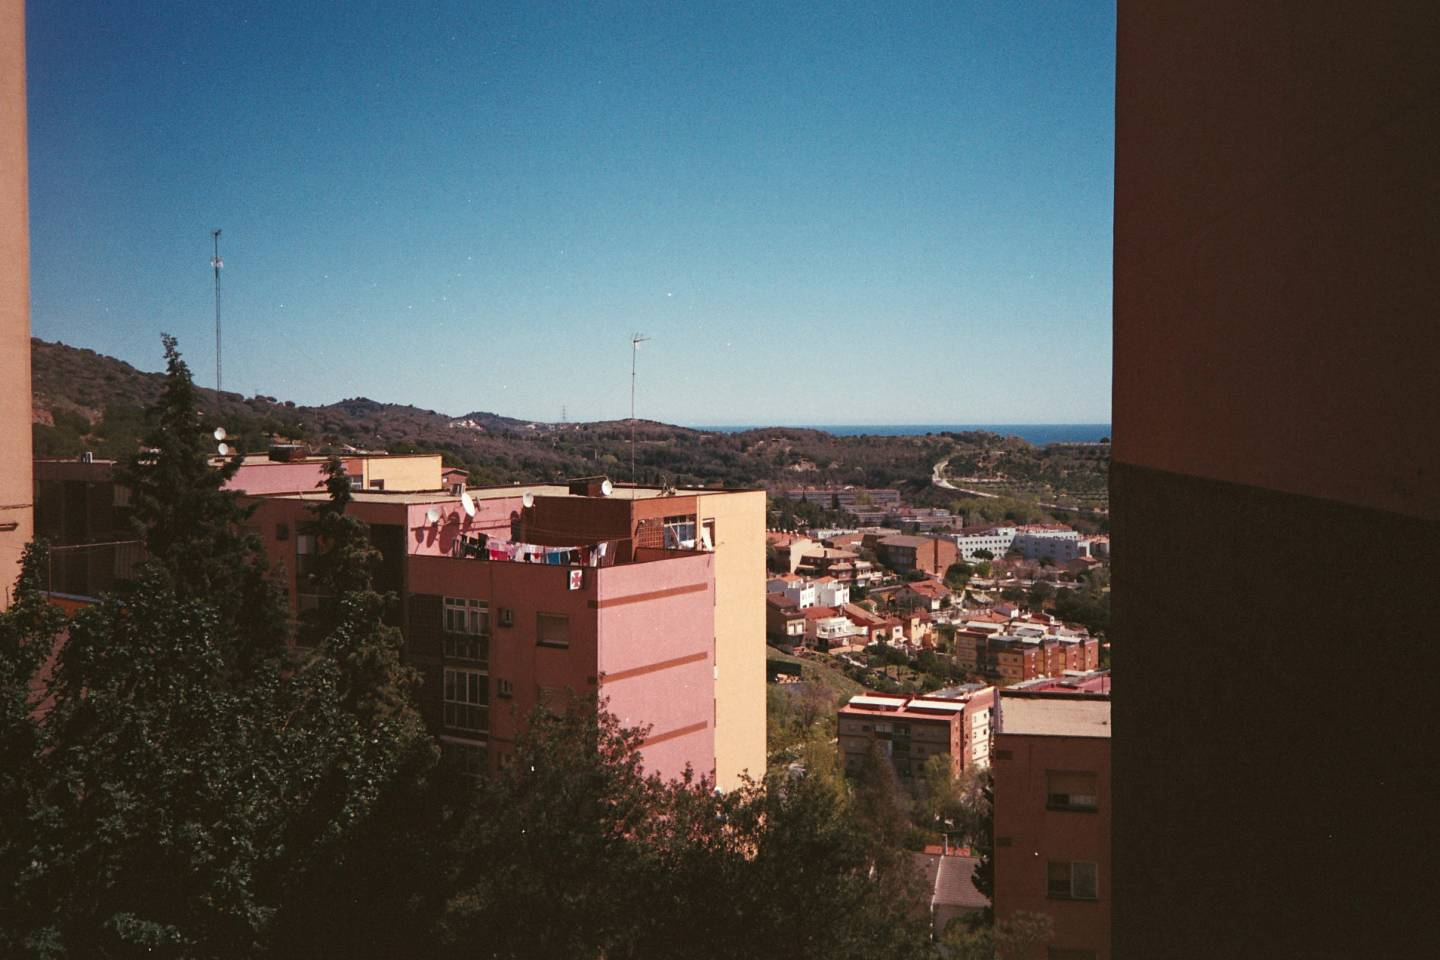 Lindsay Photo Essay | Building Culture... in Barcelona | Singuerlín, photo by Anna Izquierdo